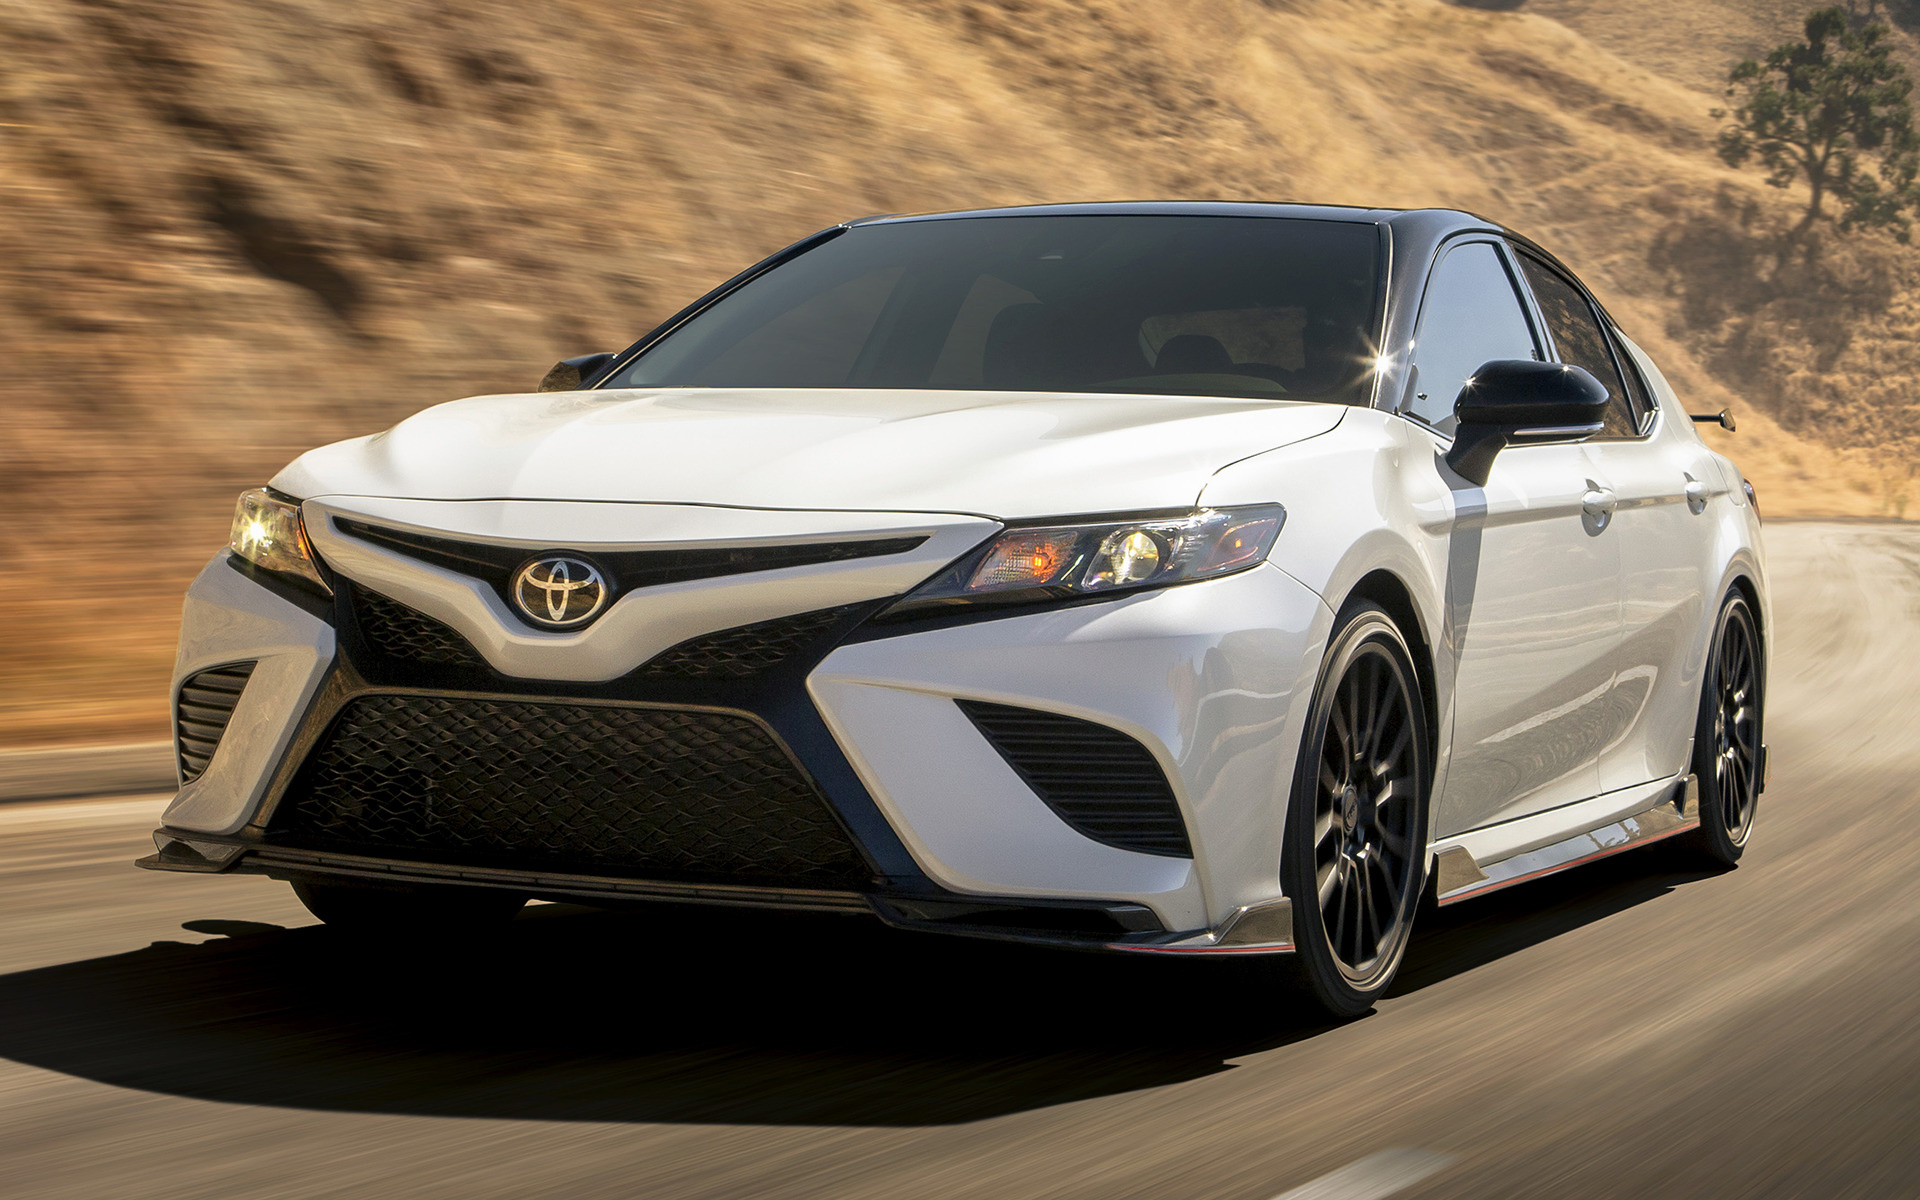 2018 Toyota Camry >> 2019 Toyota Camry TRD - Wallpapers and HD Images | Car Pixel